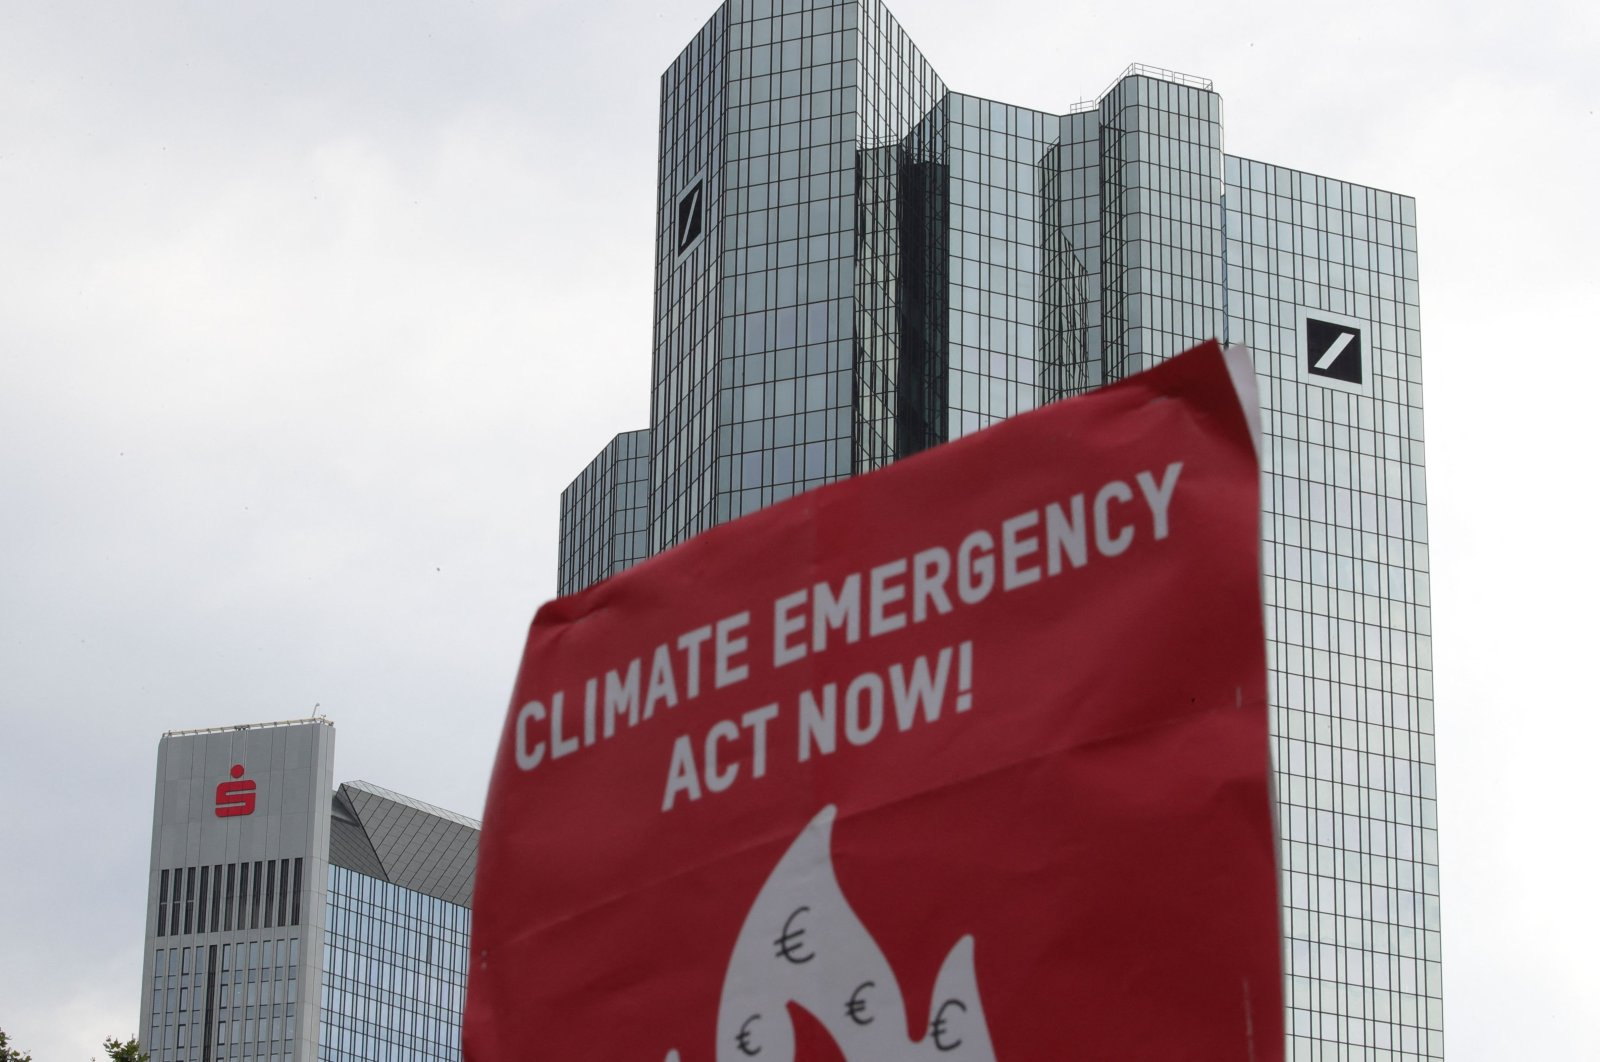 """A banner reading """"Climate emergency, act now"""" is pictured next to the headquarters of Deutsche Bank during a protest against bank investments in fossil fuels, in Frankfurt, western Germany, Aug. 13, 2021. (AFP Photo)"""